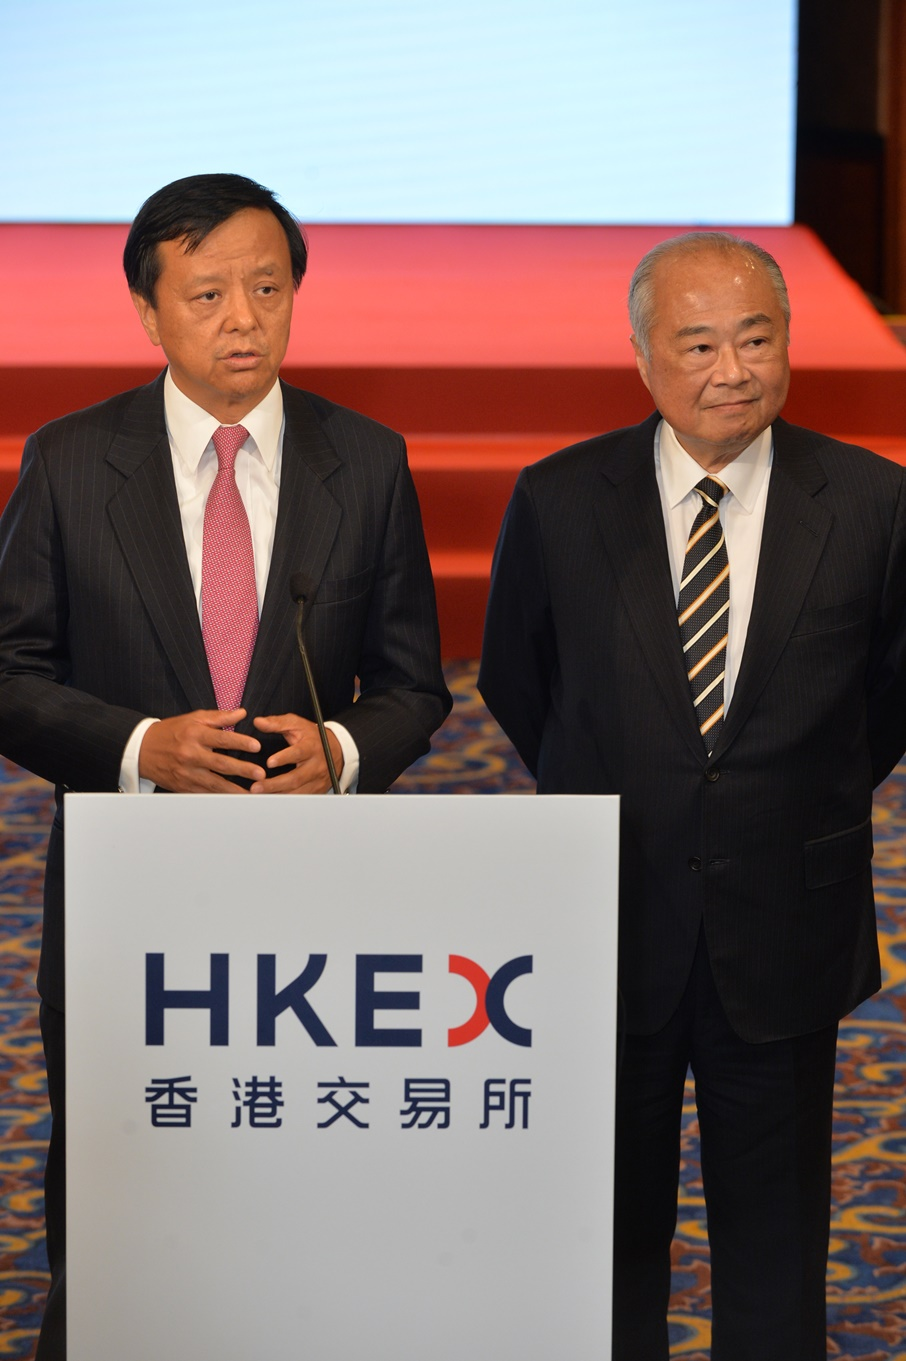 HKEX Chief Executive Charles Li (left) and Chairman C K Chow (right) took media questions at HKEX's 16th anniversary celebration on 28 June 2016.